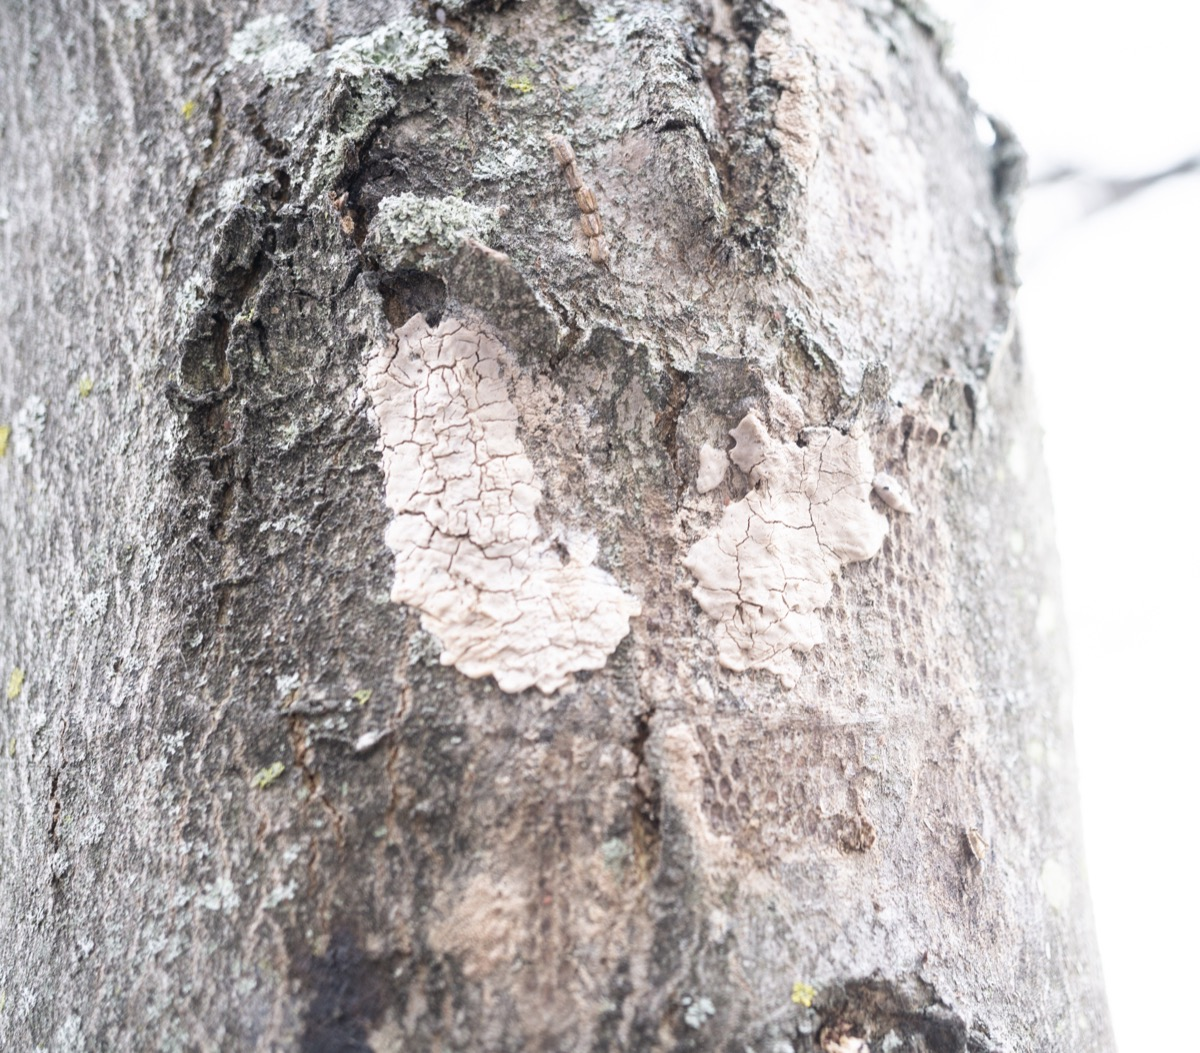 Spotted lanternfly egg mass on a tree